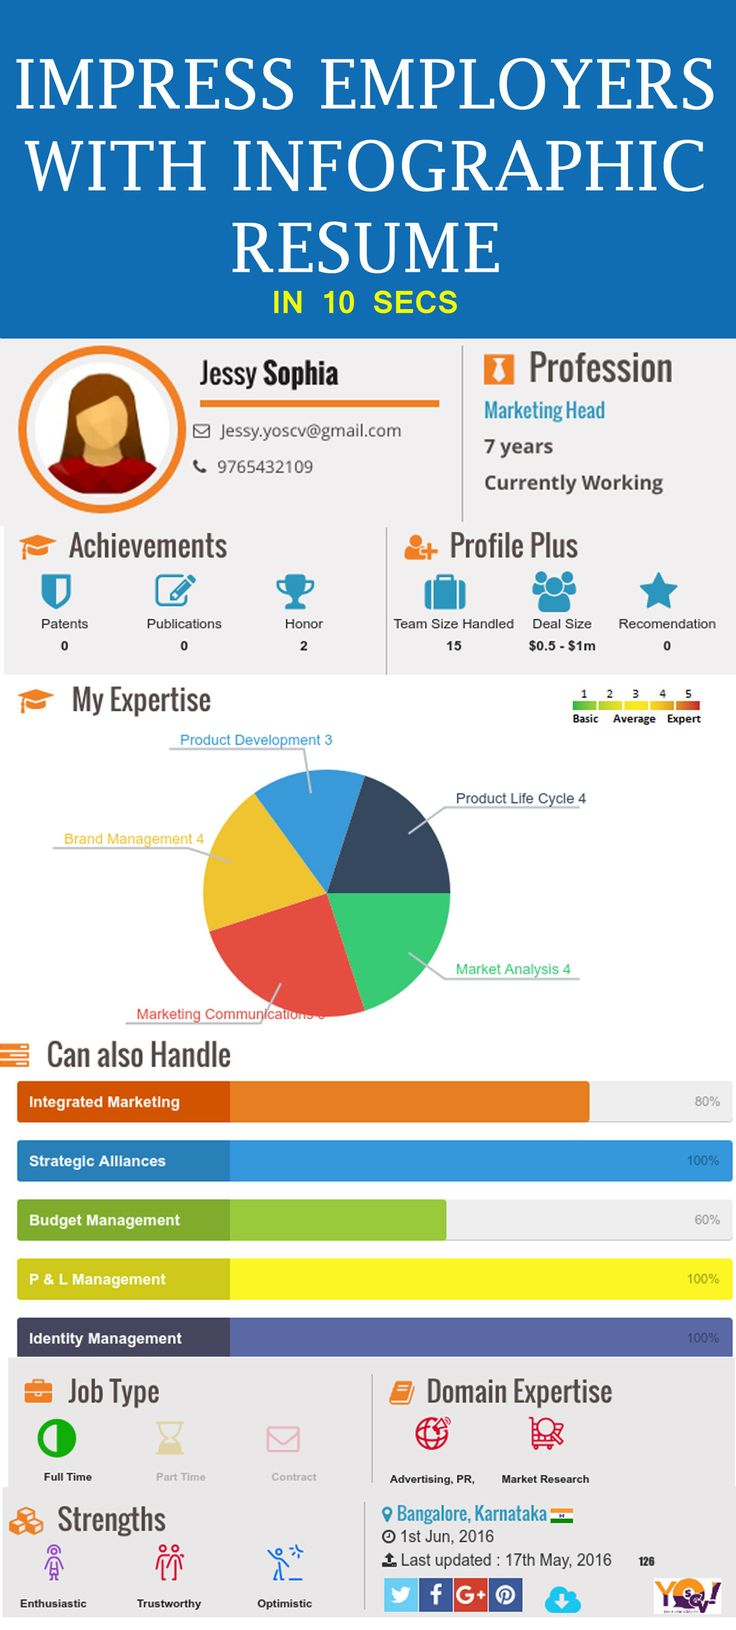 how to impress employers with infographic resume online at yoscv